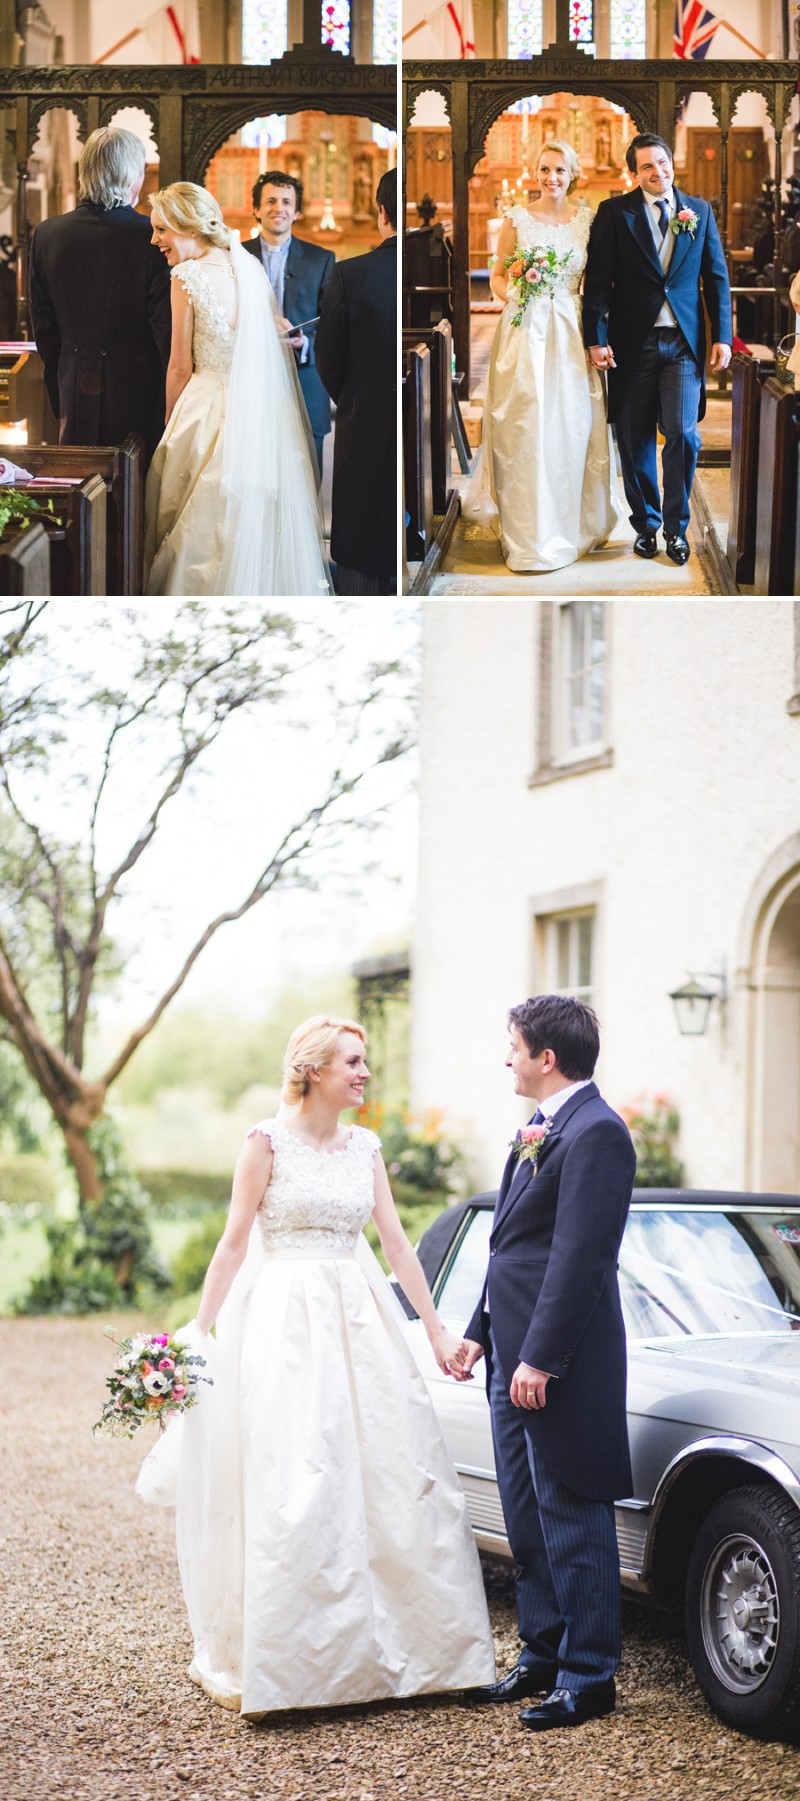 An Elegant English Wedding At The Matara Centre In The Cotswolds With A Bespoke Jenny Lessin Wedding Skirt and Top And Hot Pink Bridesmaid Dresses And A Gin And Tonic Cocktail Bar By M&J Photography._0004